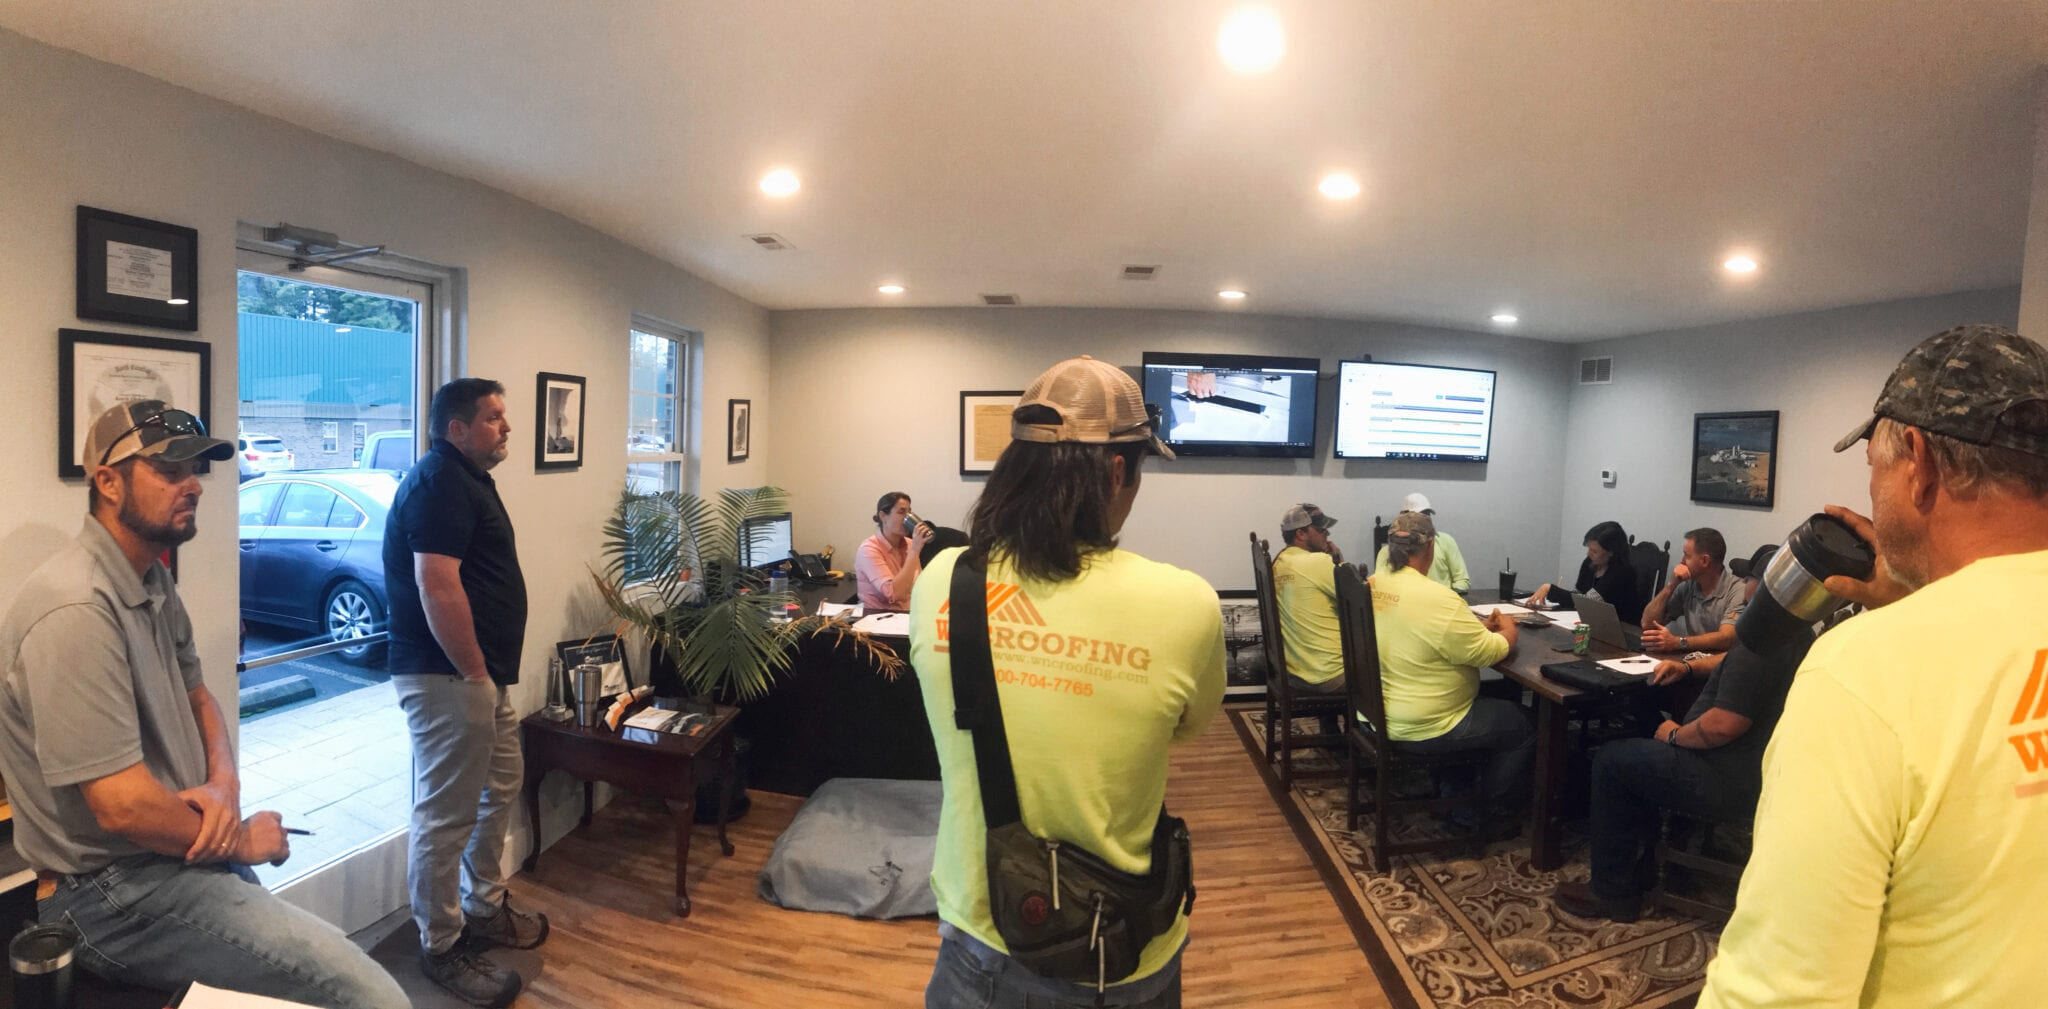 The WNC Roofing office meets in the conference room for Monday Plans